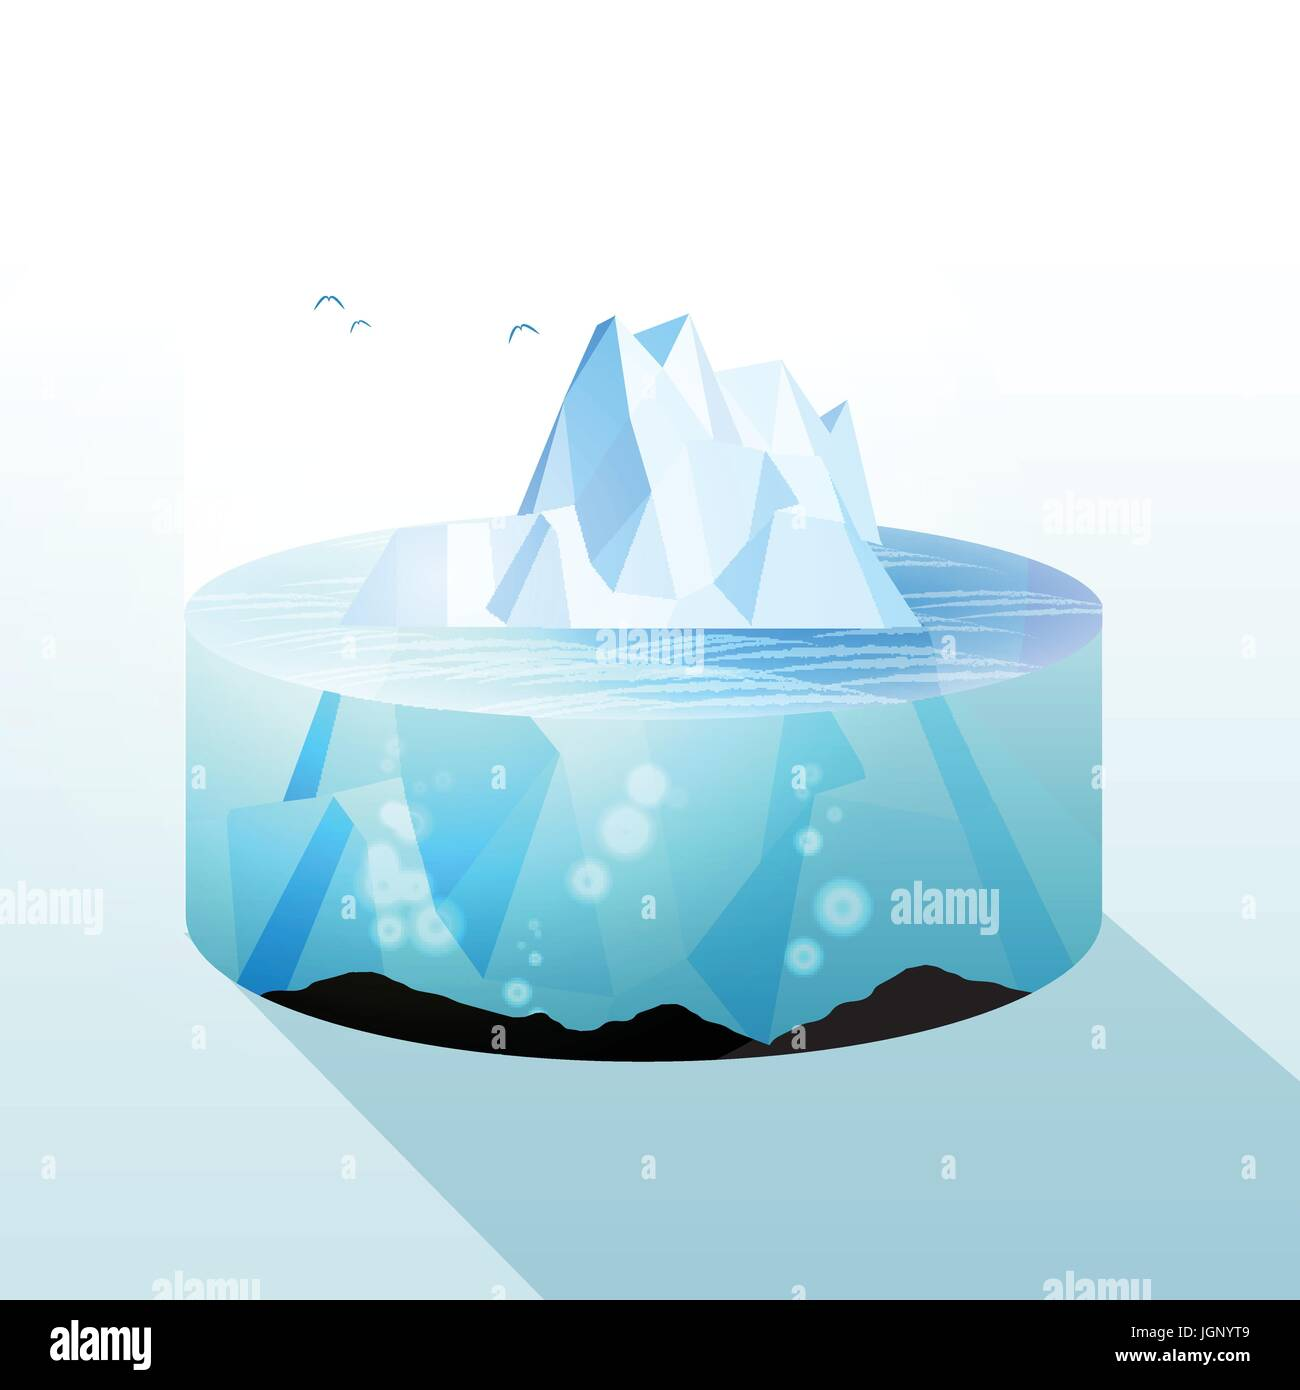 Iceberg Slice Underwater and Above Water Level View - Vector Illustration - Stock Vector